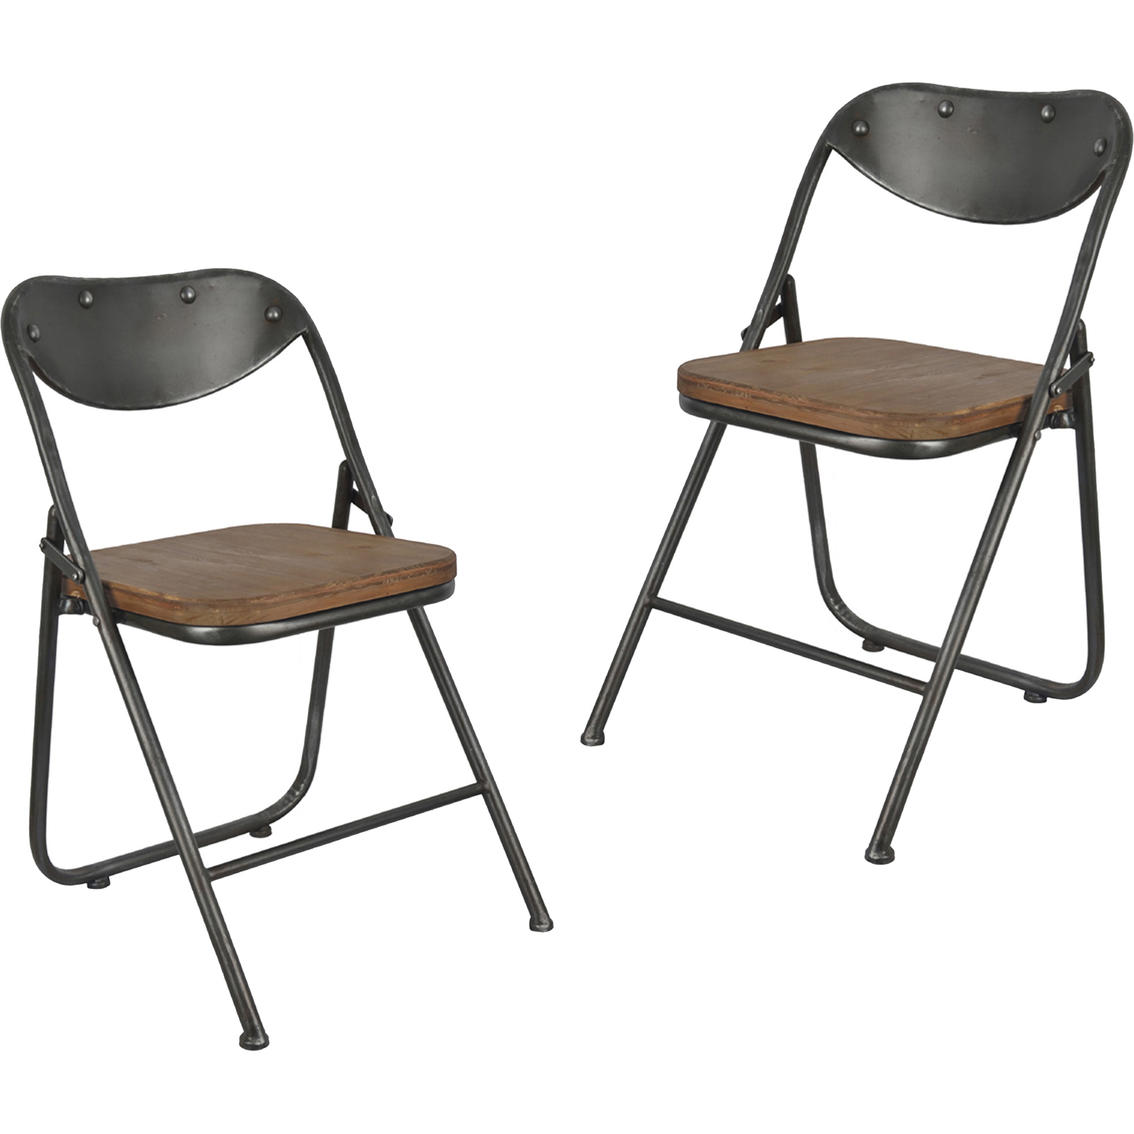 Decor Therapy Vintage Wood Seat Folding Chair 2 Pk Dining